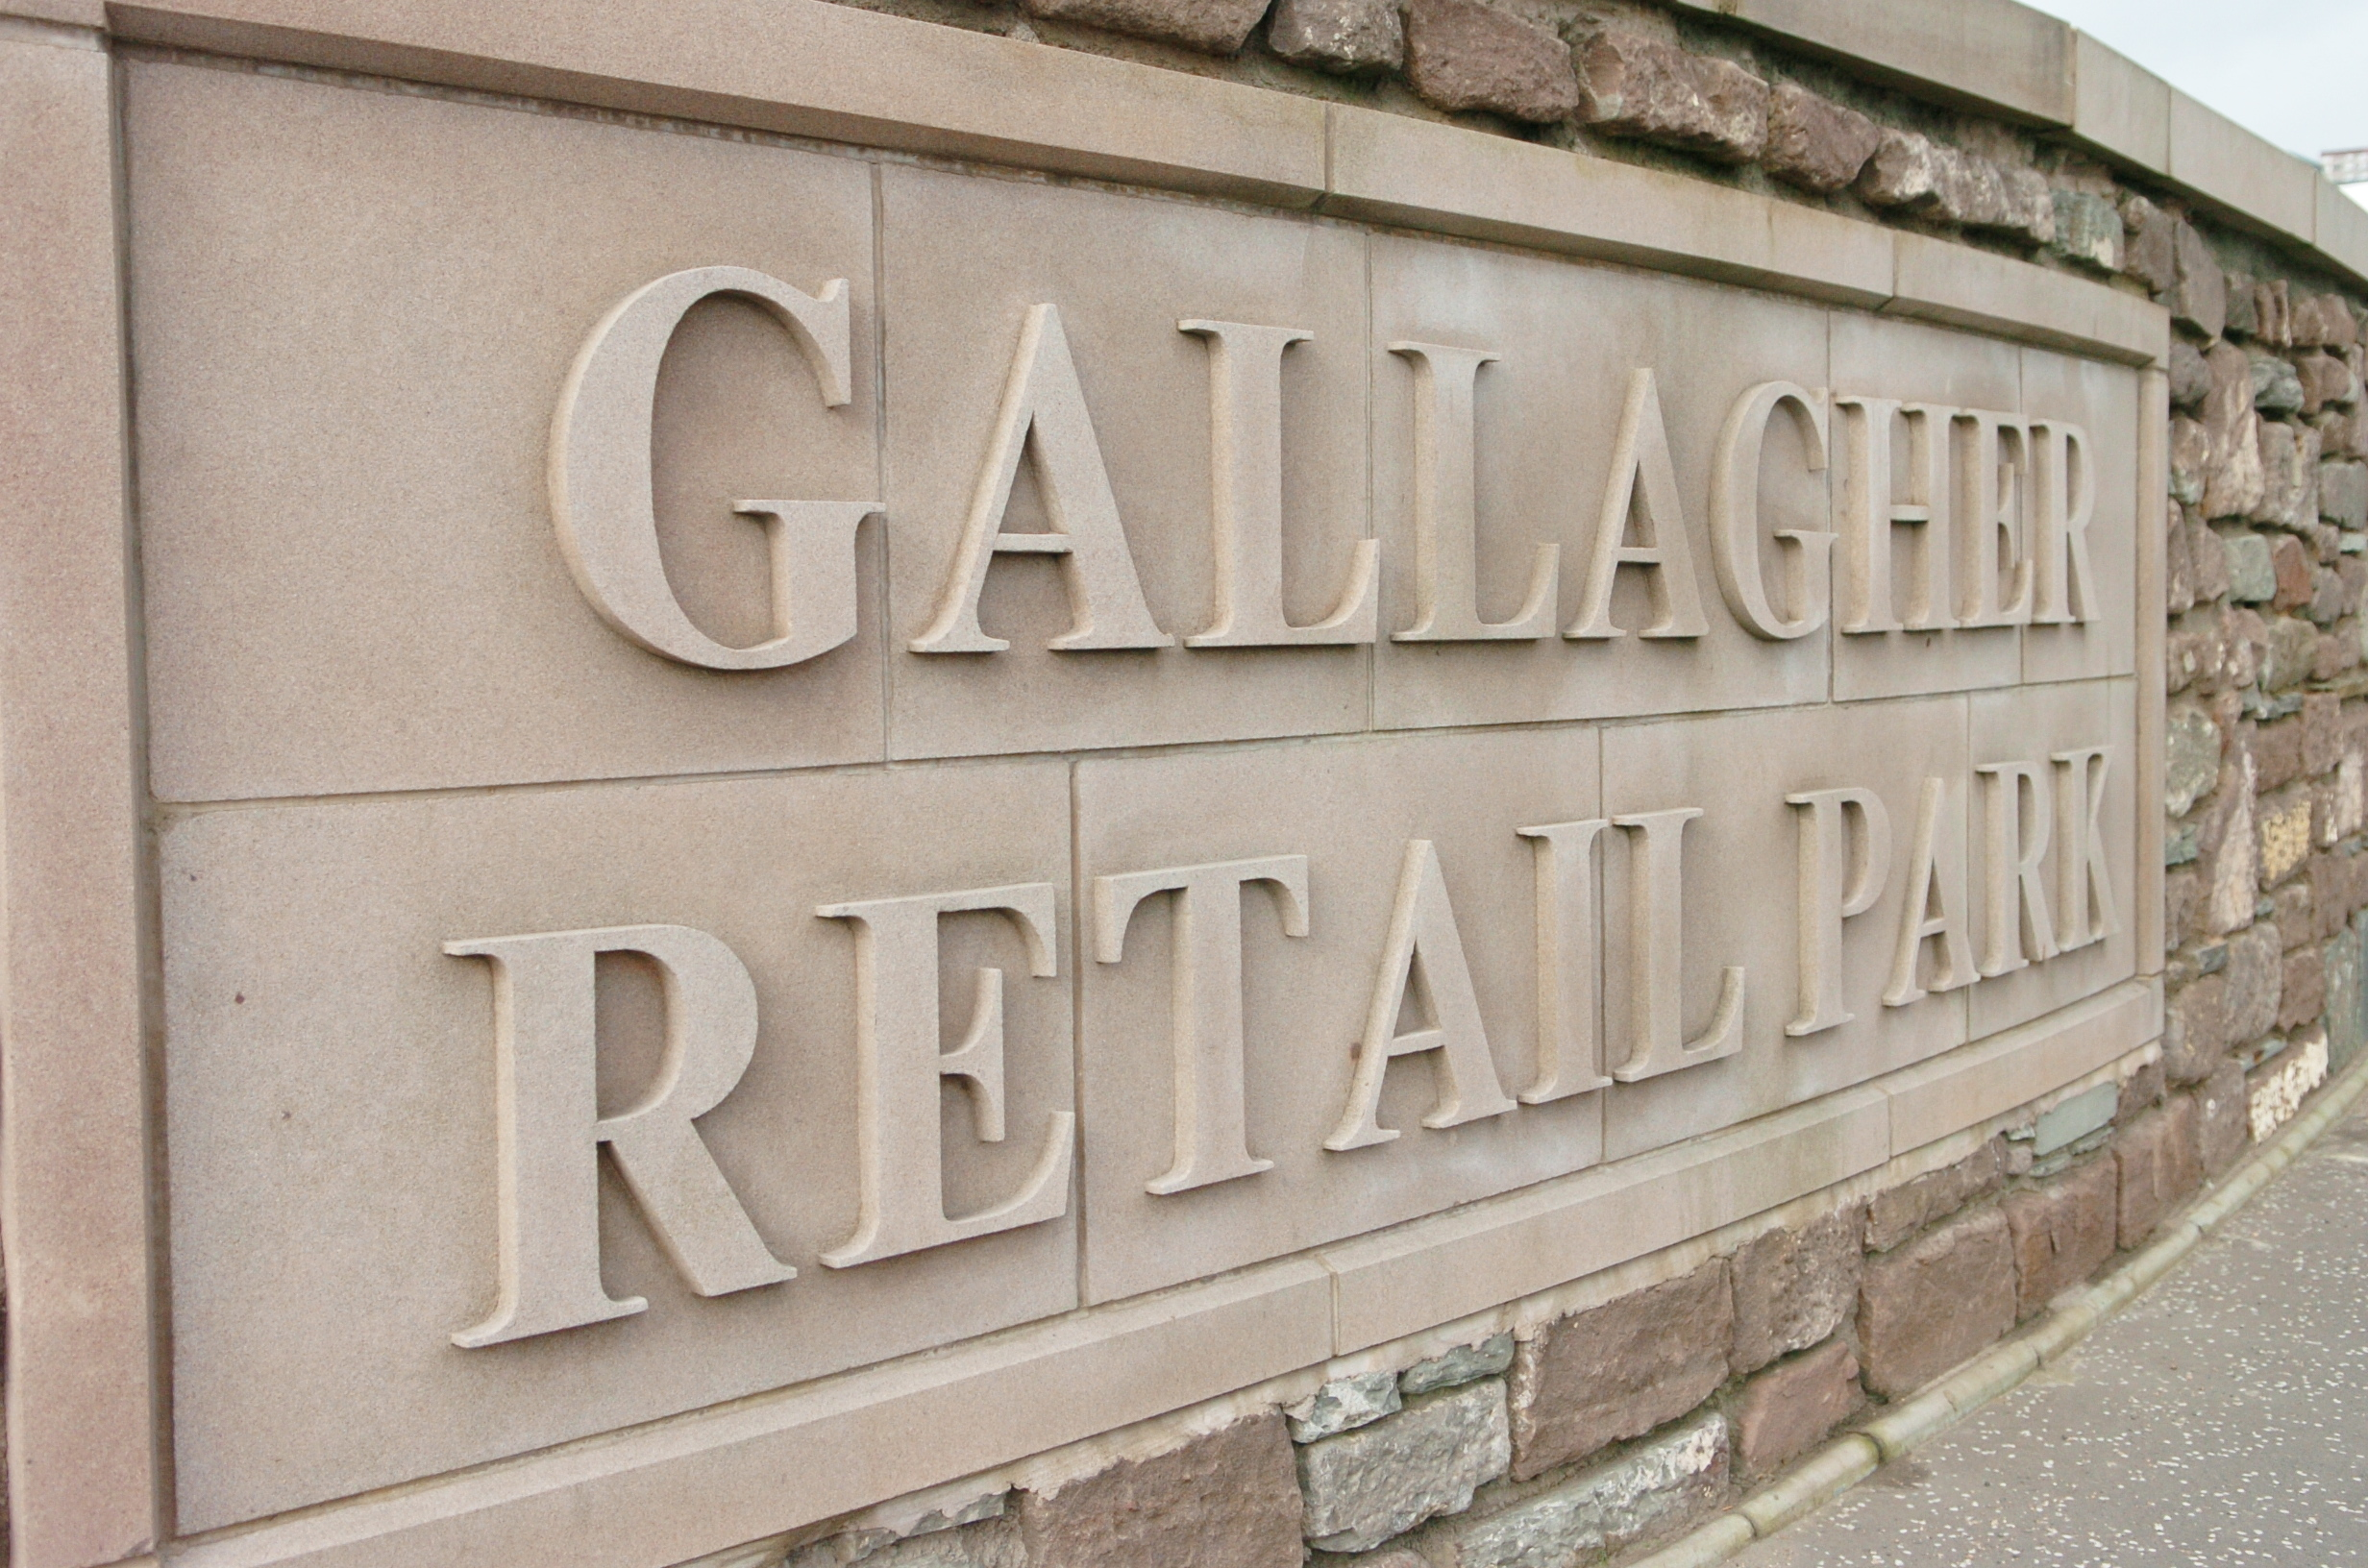 The alleged incident took place at the Gallagher Retail Park